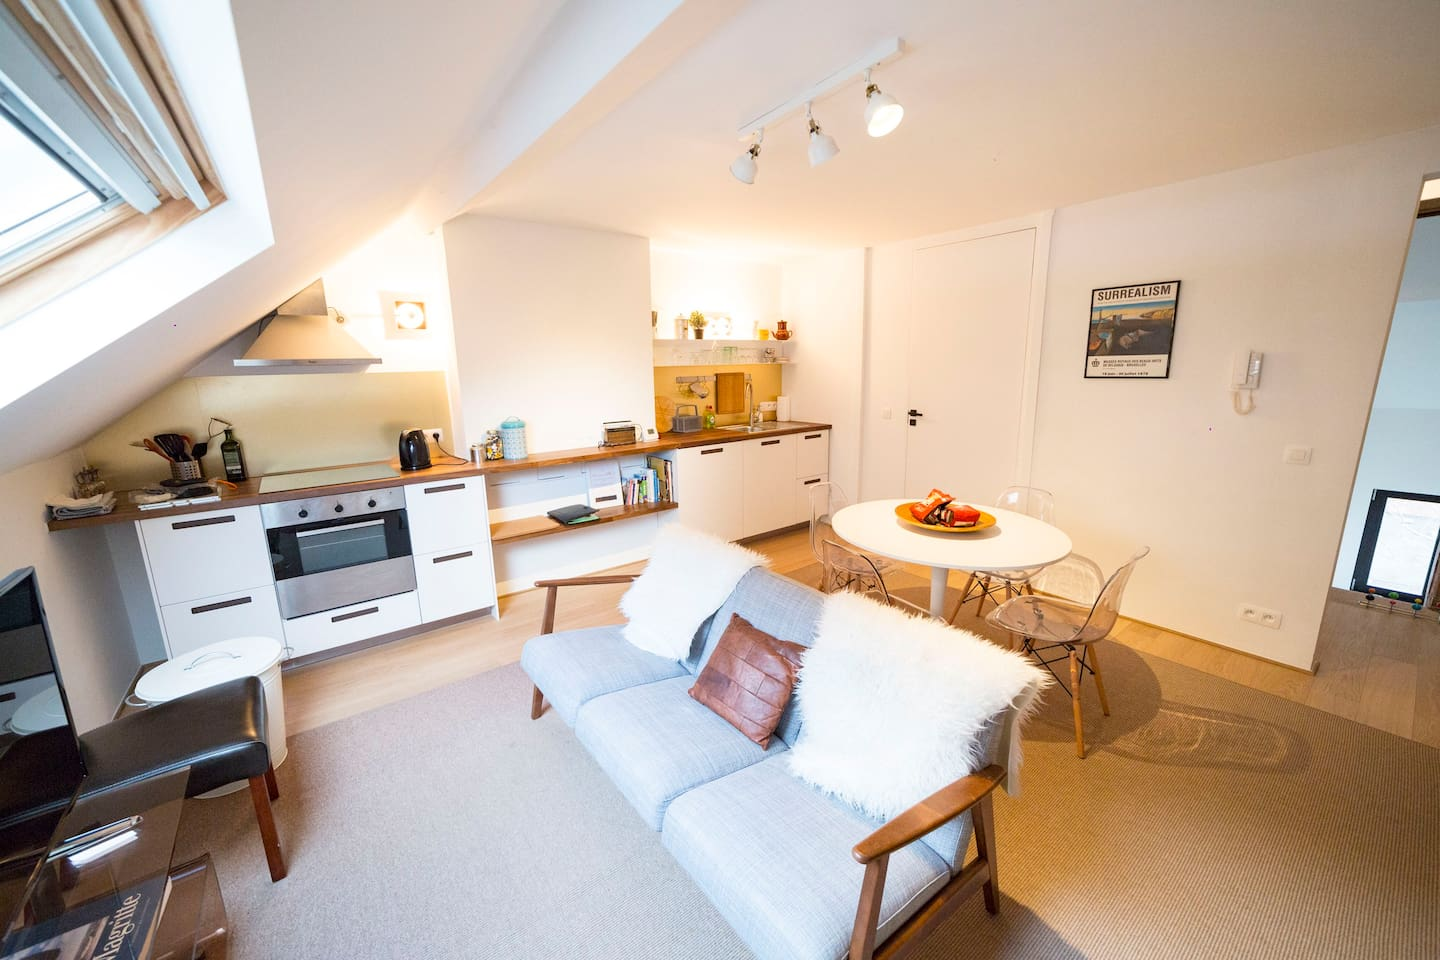 Welcome to the gold vintage duplex. Everything has been designated especially for travellers like you!